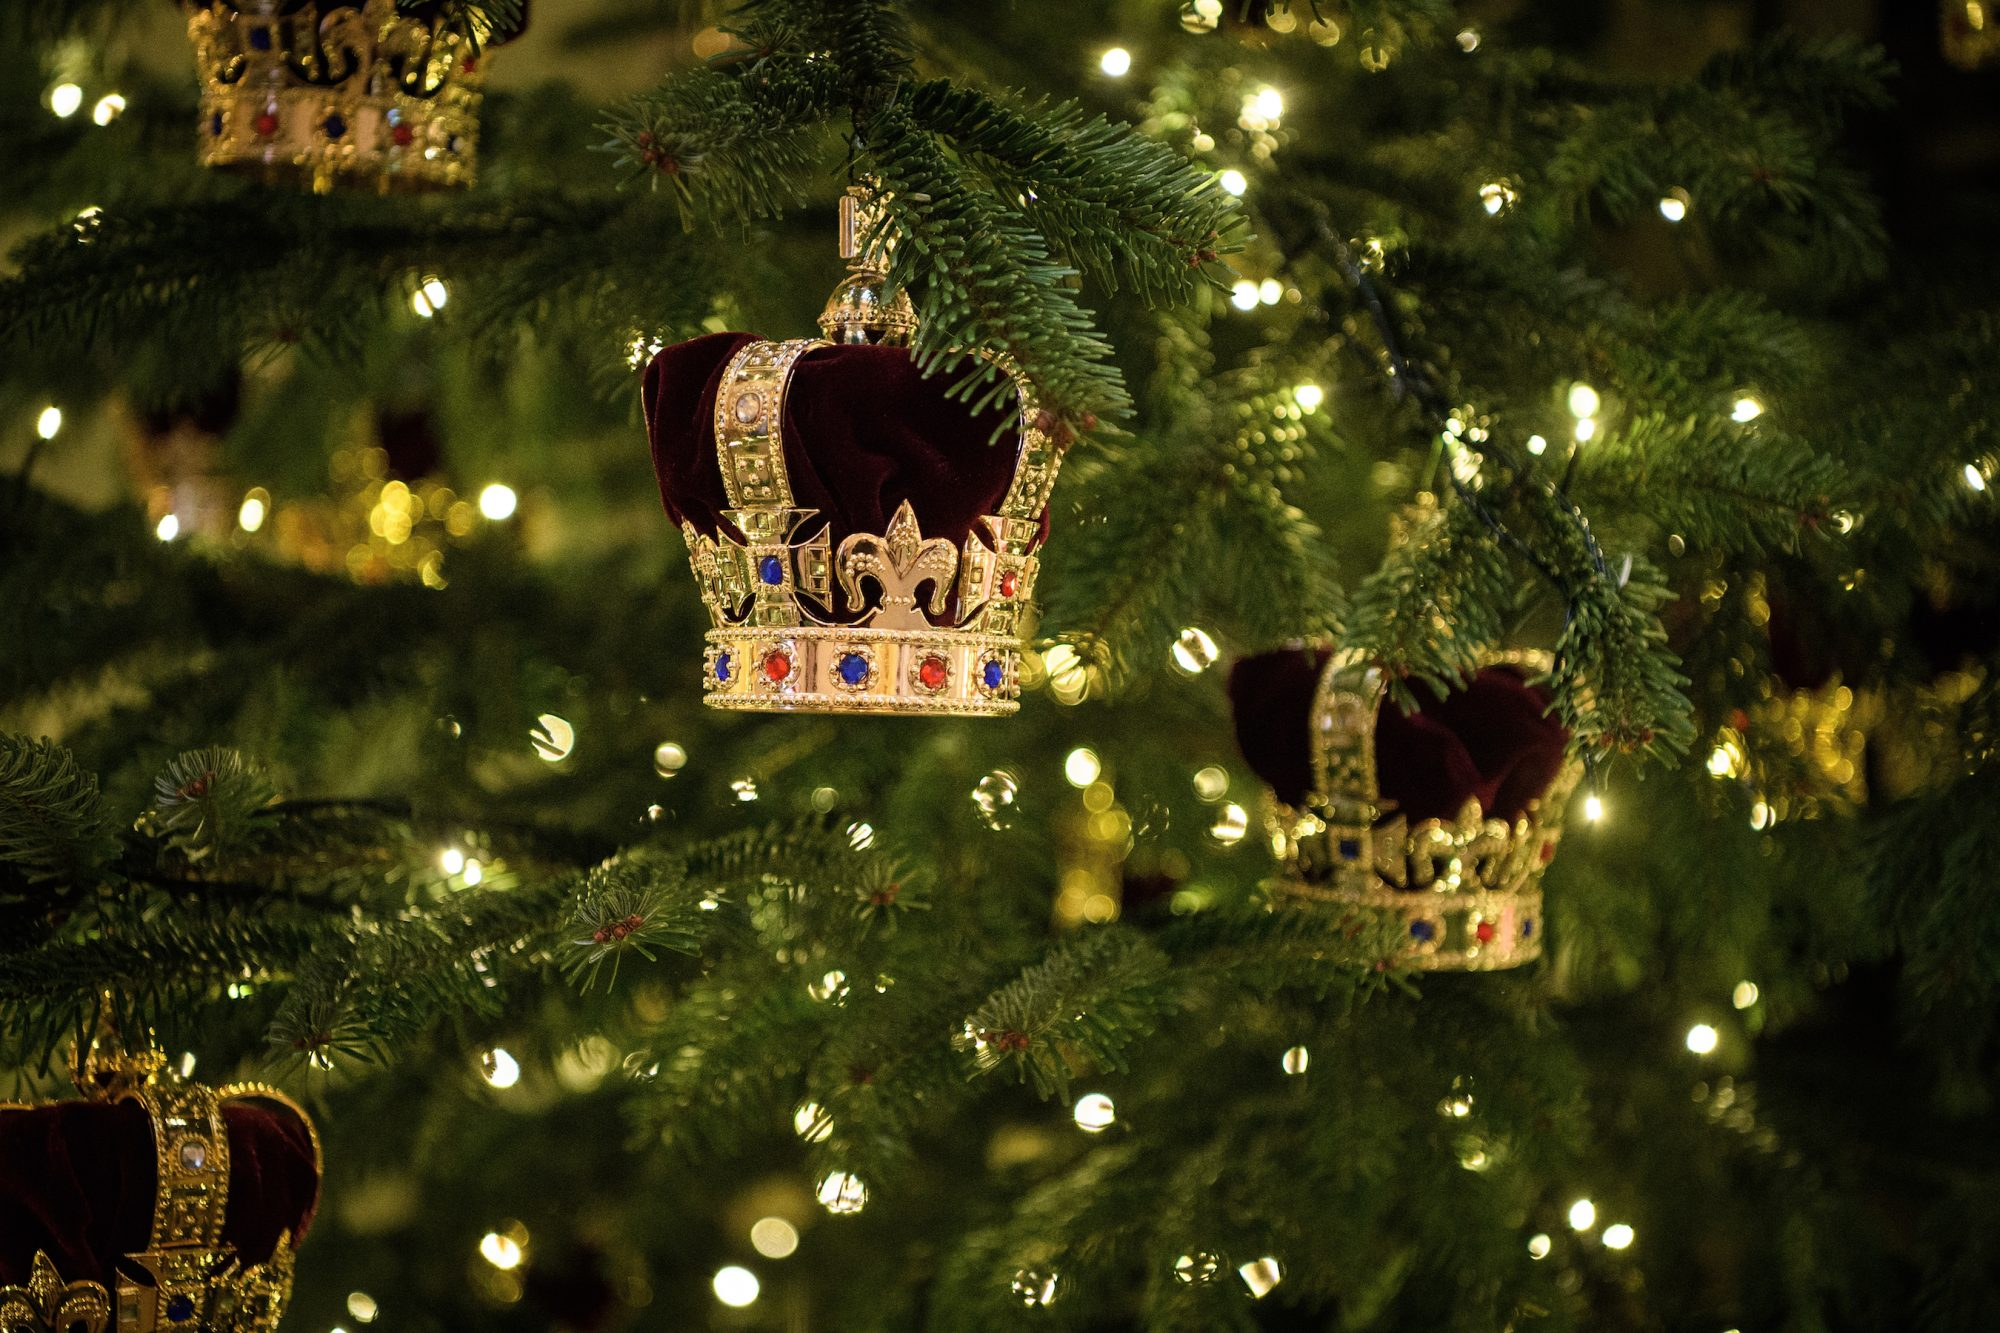 Heres How Buckingham Palace Does Christmas Decorations Heres How Buckingham Palace Does Christmas Decorations new photo